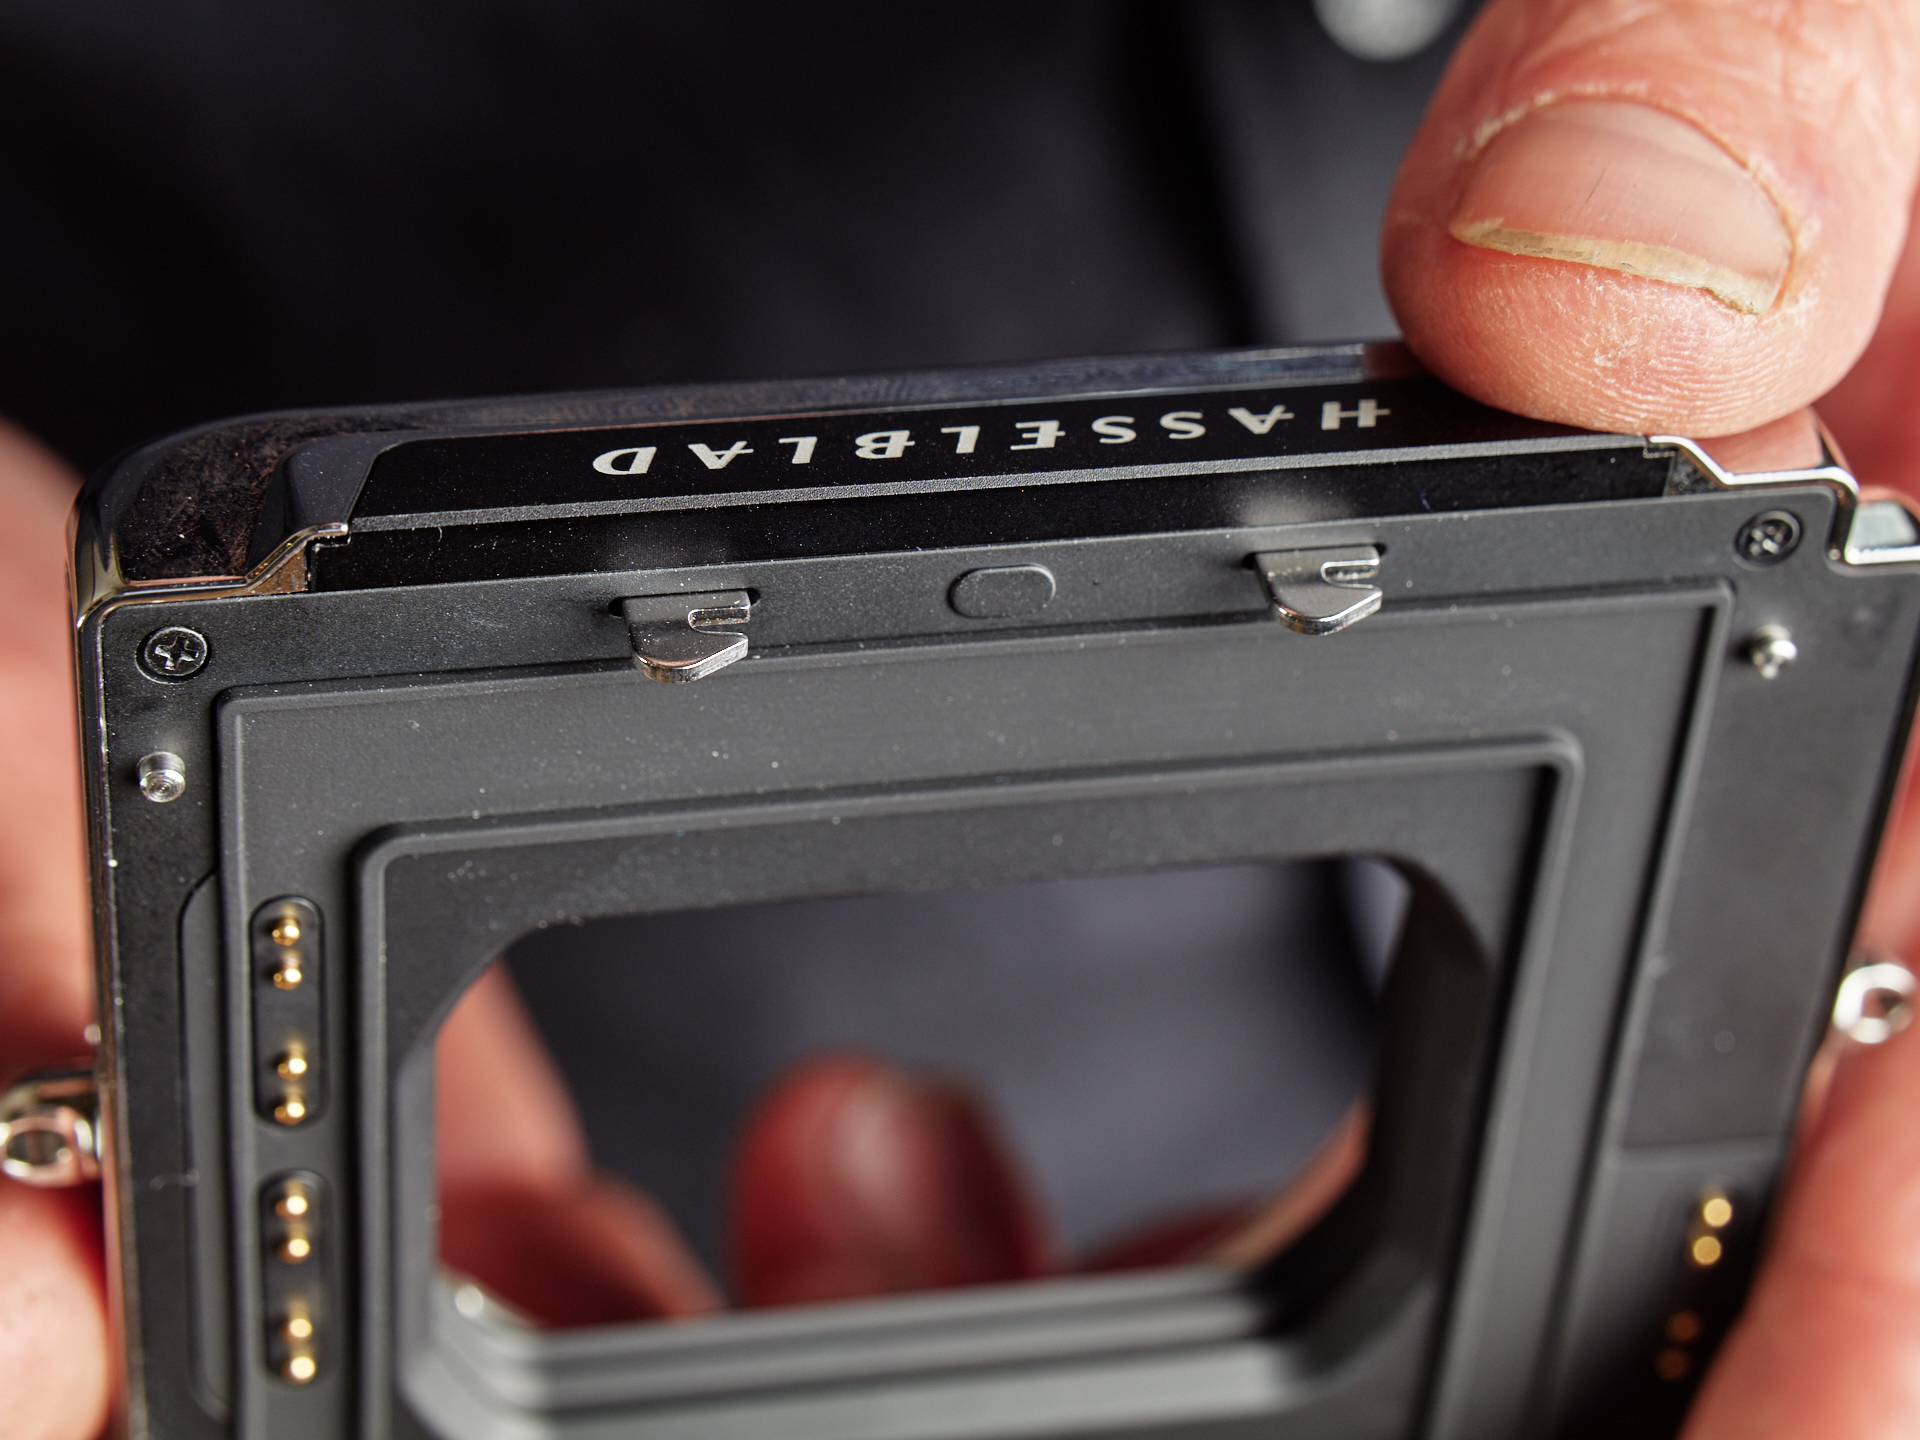 Hands-on with the Hasselblad CFV II 50C and 907X – My